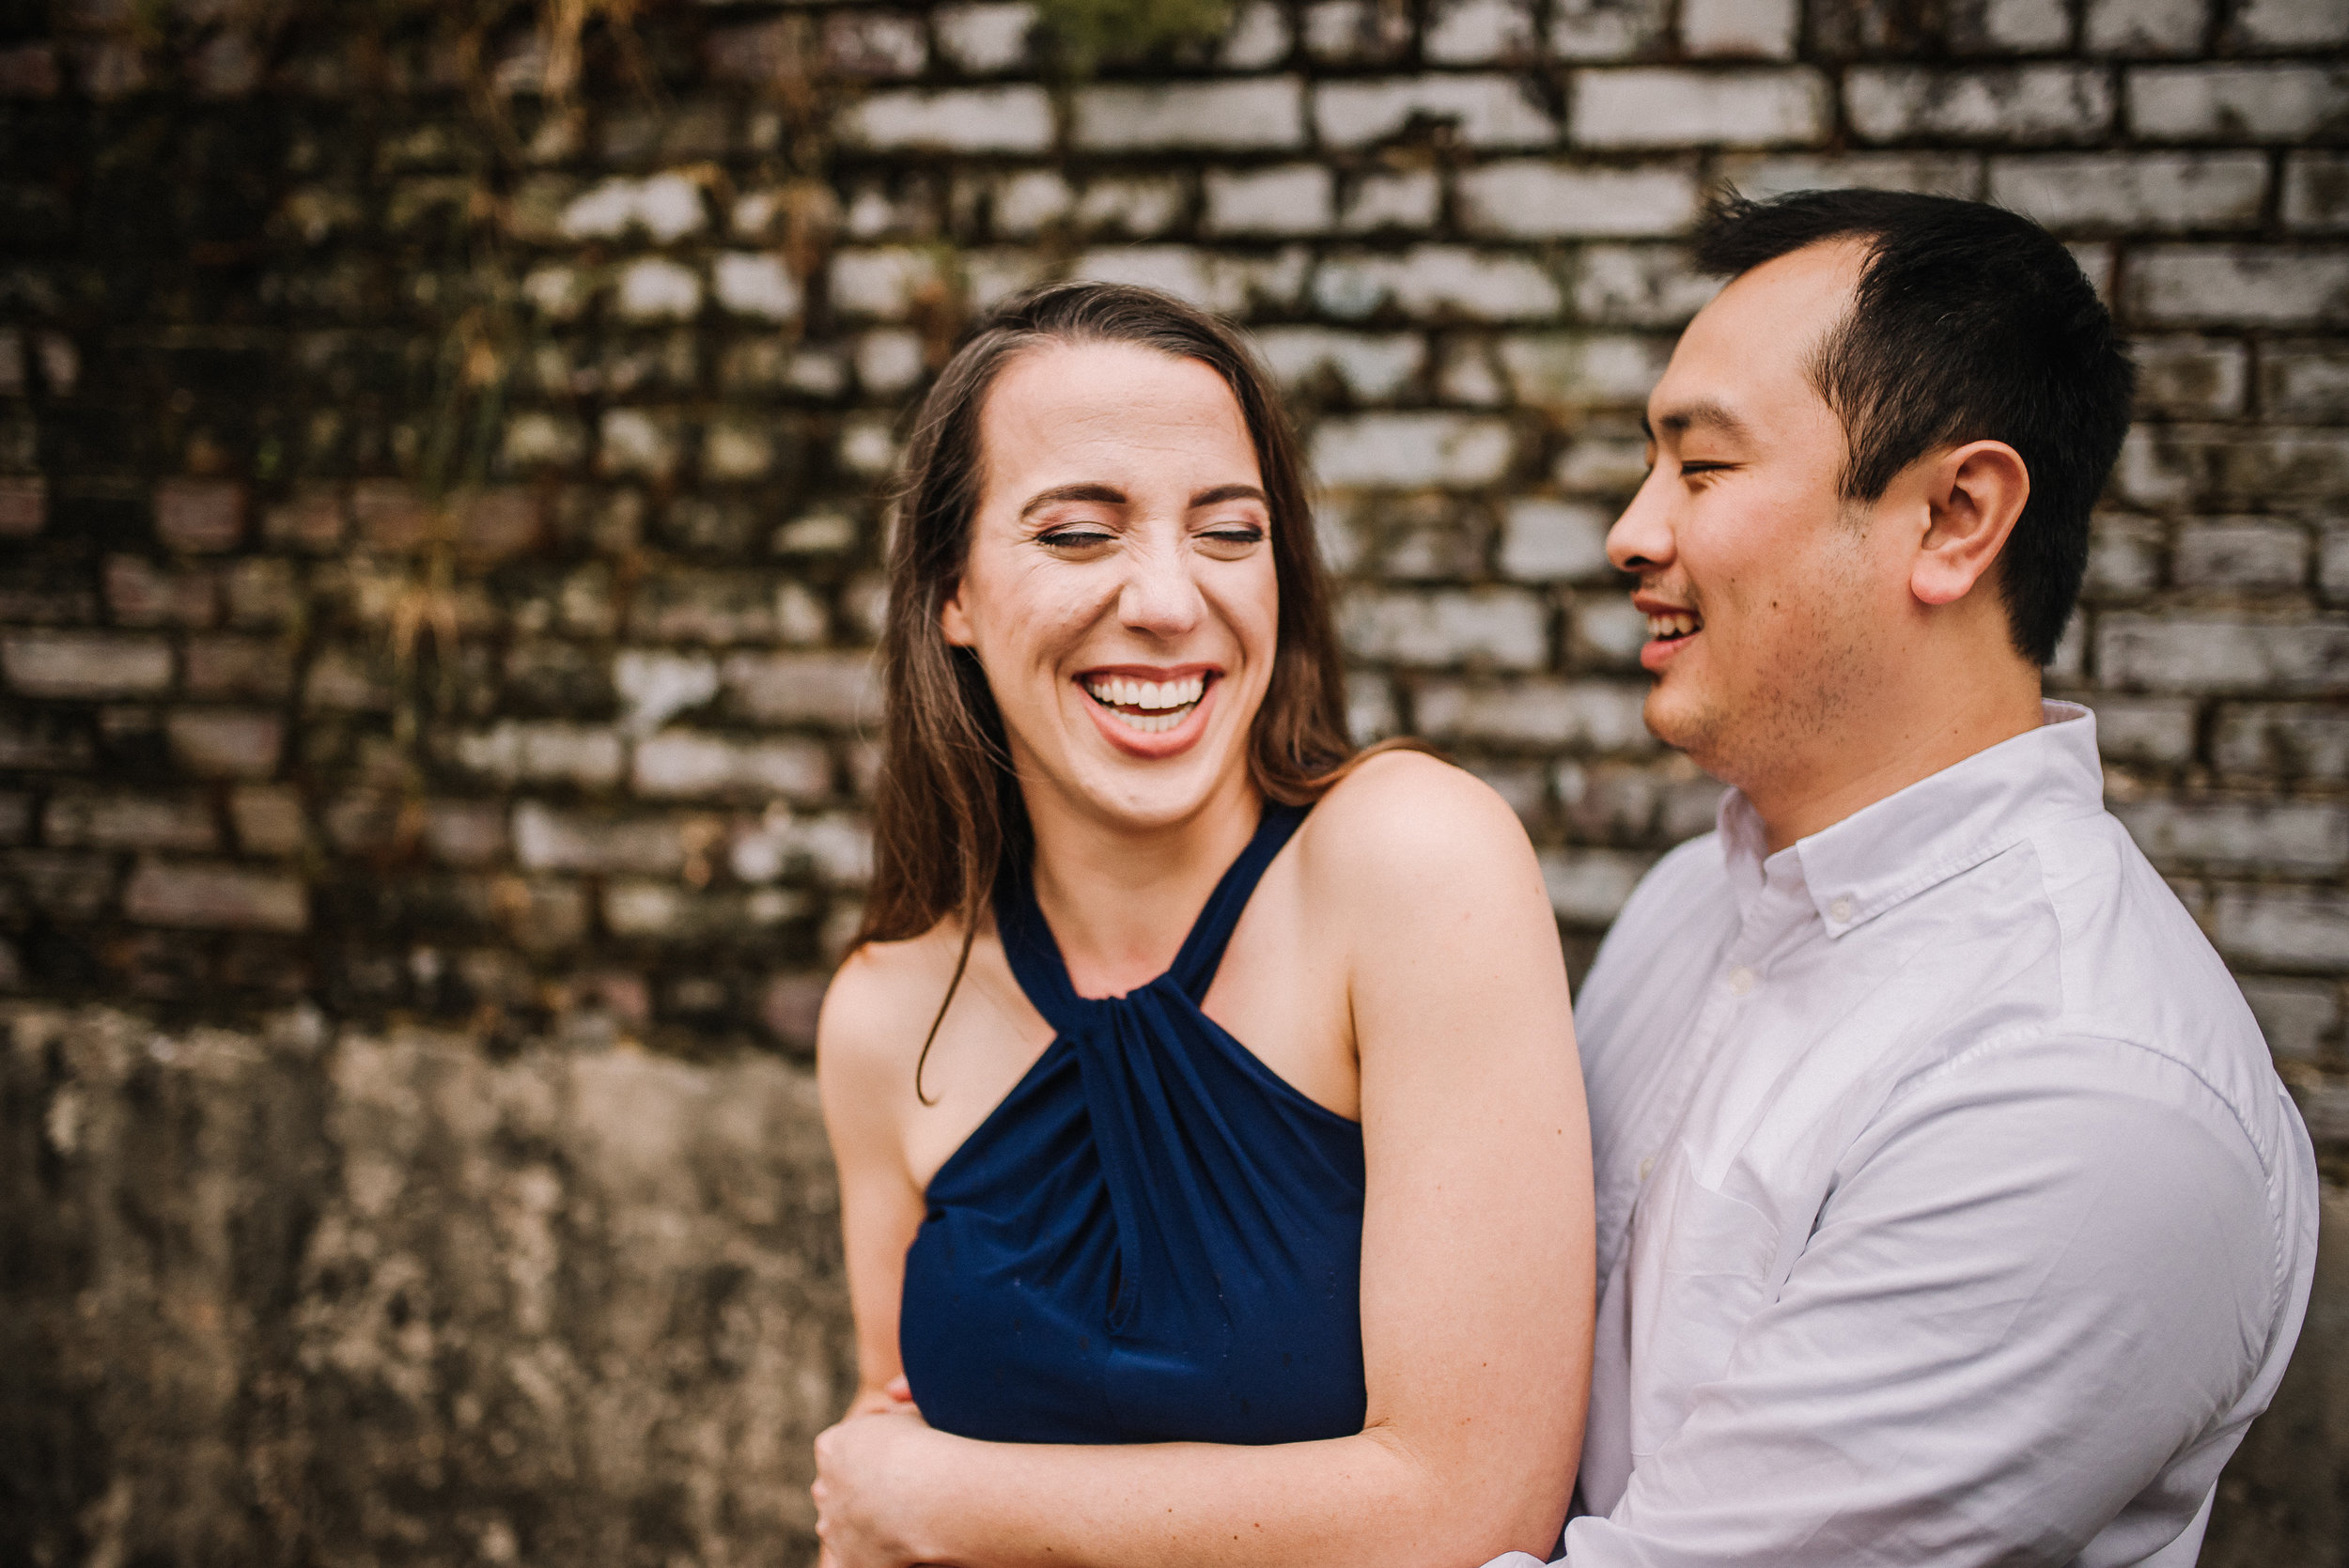 Jenny&Patrick_Downtown Memphis Engagement_Ashley Benham Photography-43.jpg